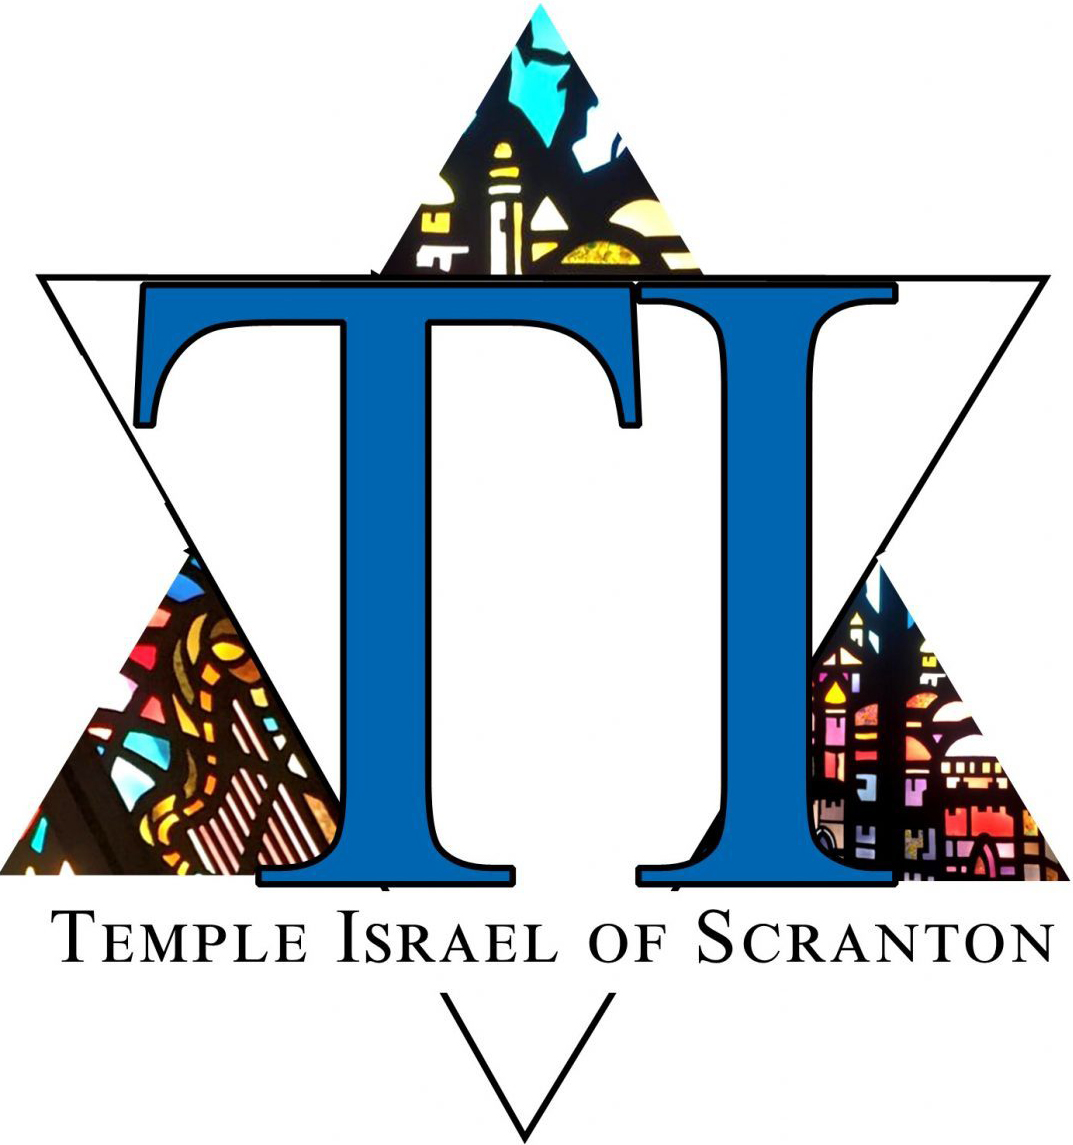 Temple Israel of Scranton